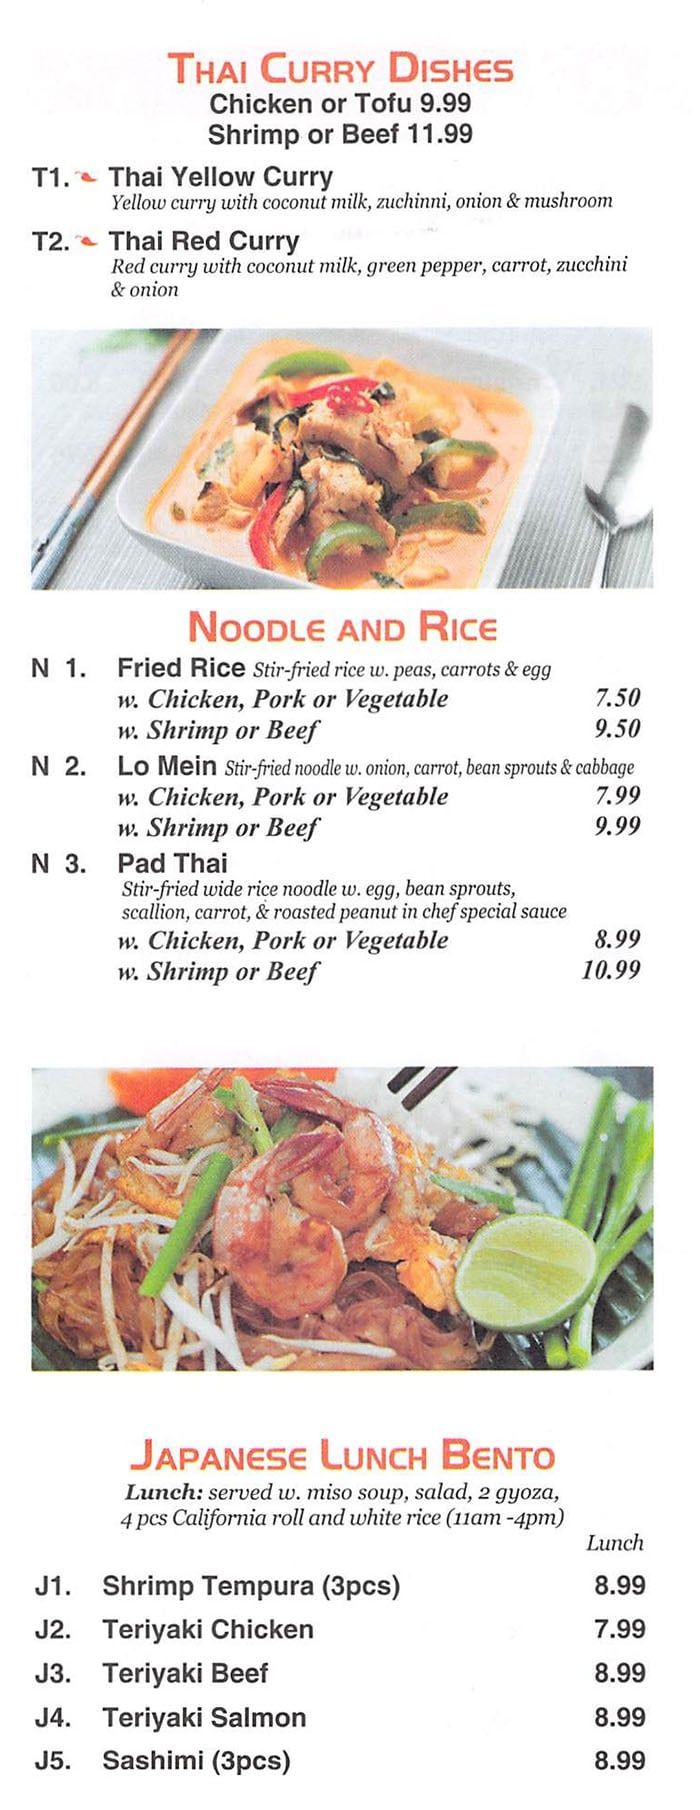 Red 8 Asian Bistro & Sushi Bar menu - Thai curry, noddle and rice, bento boxes